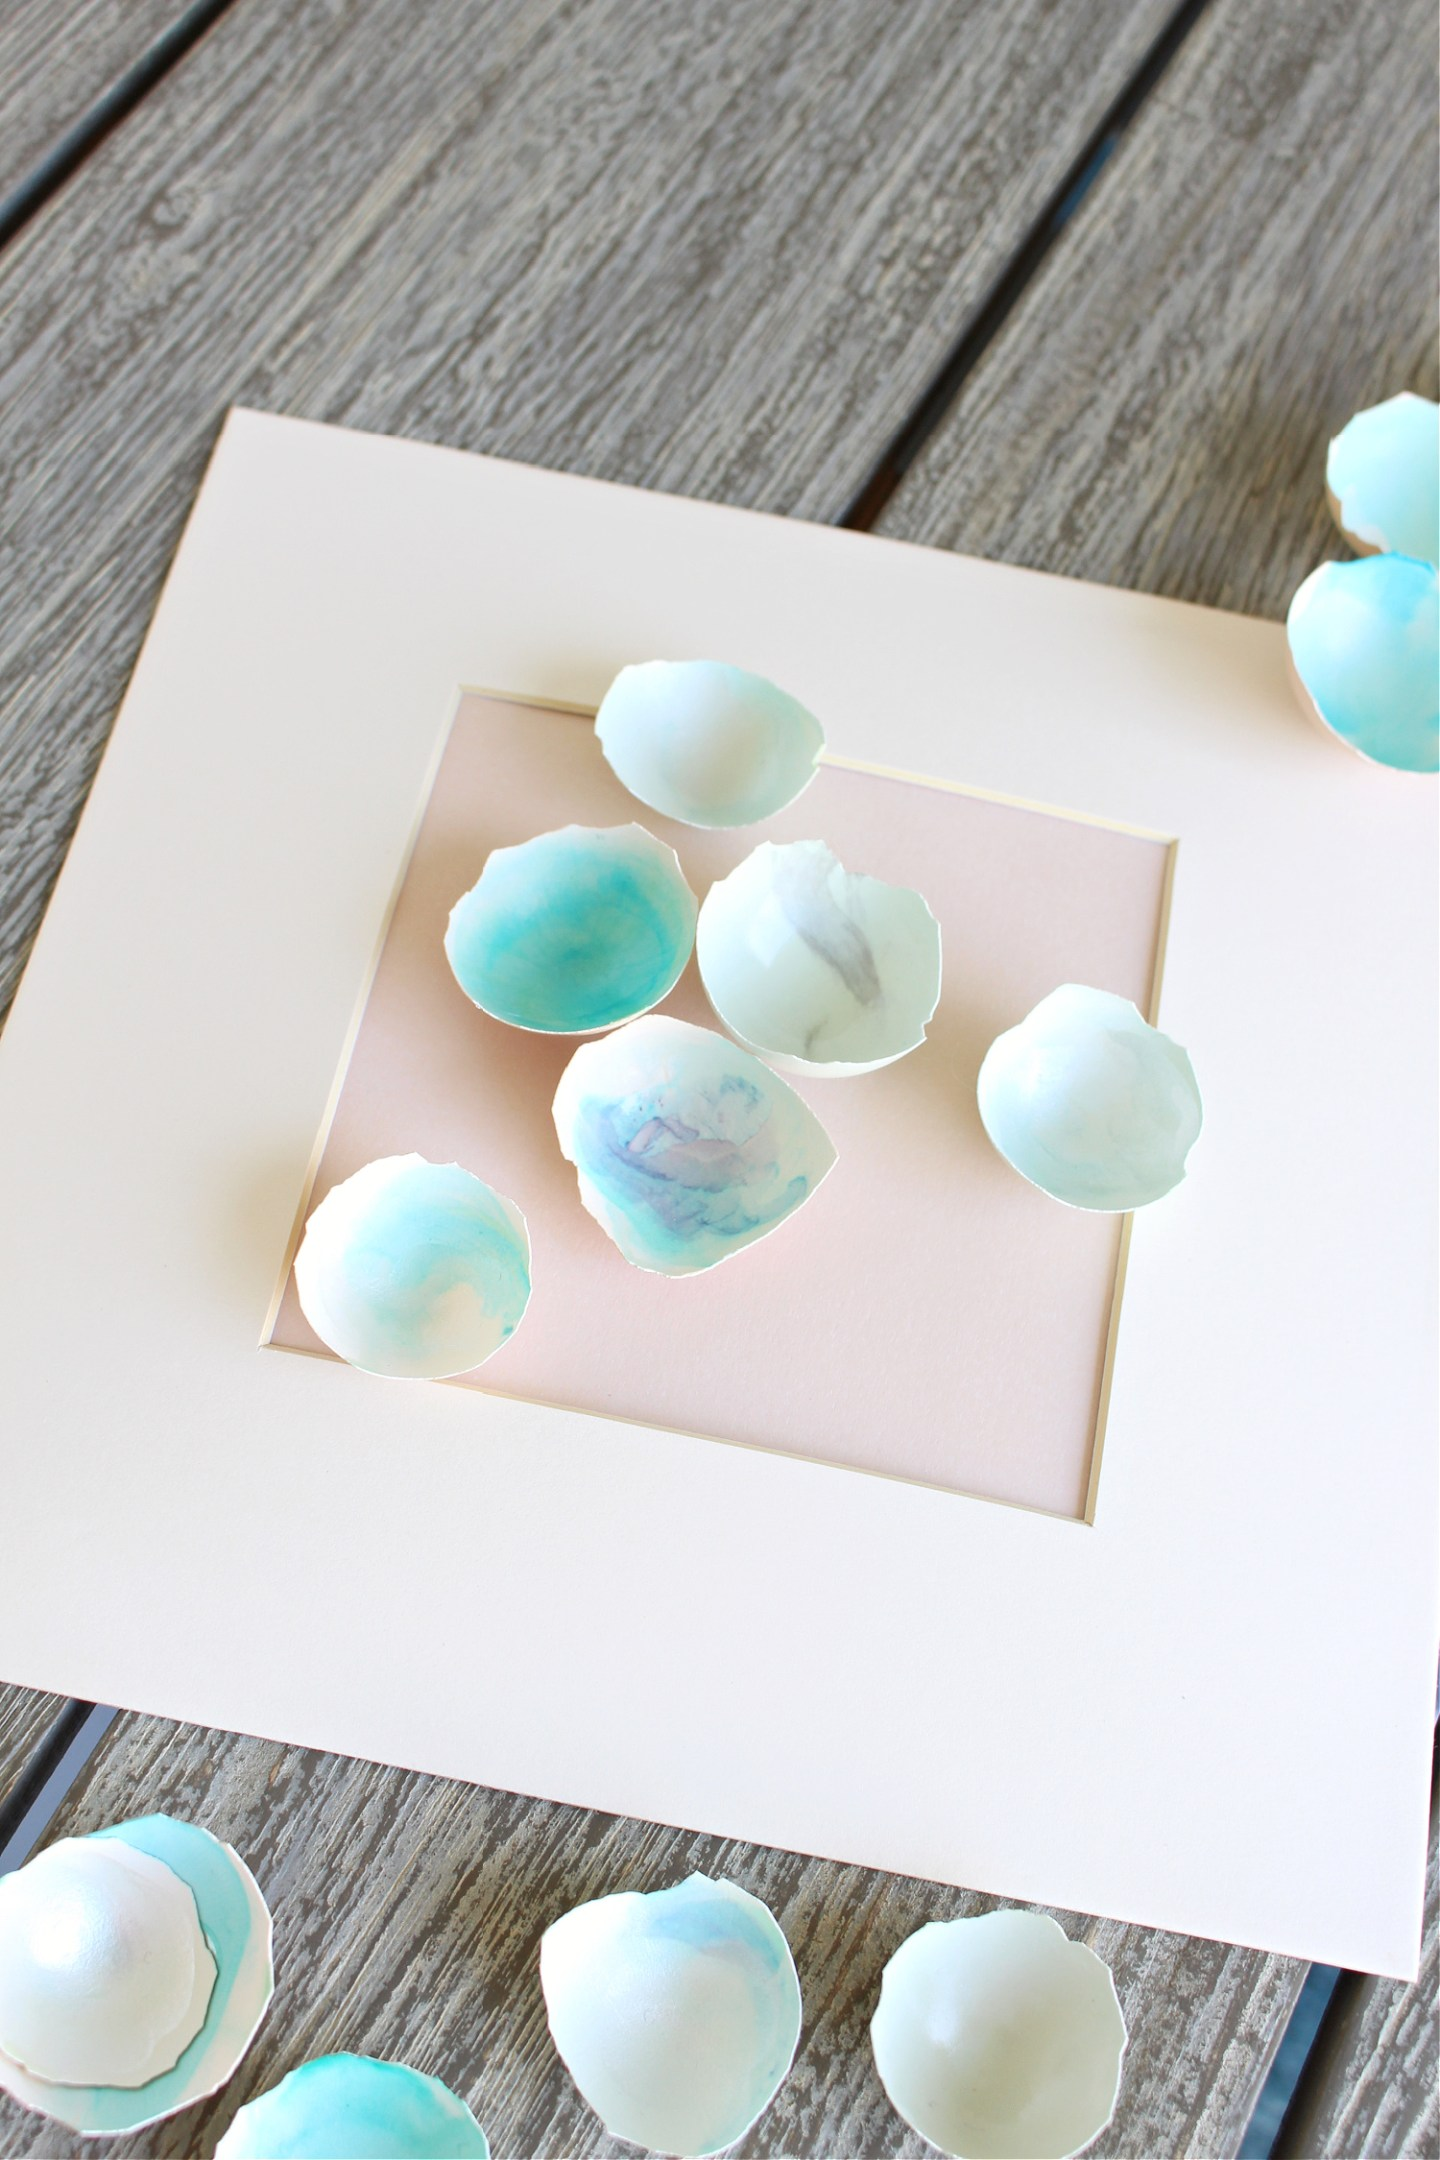 How to Make Painted Egg Shell Art